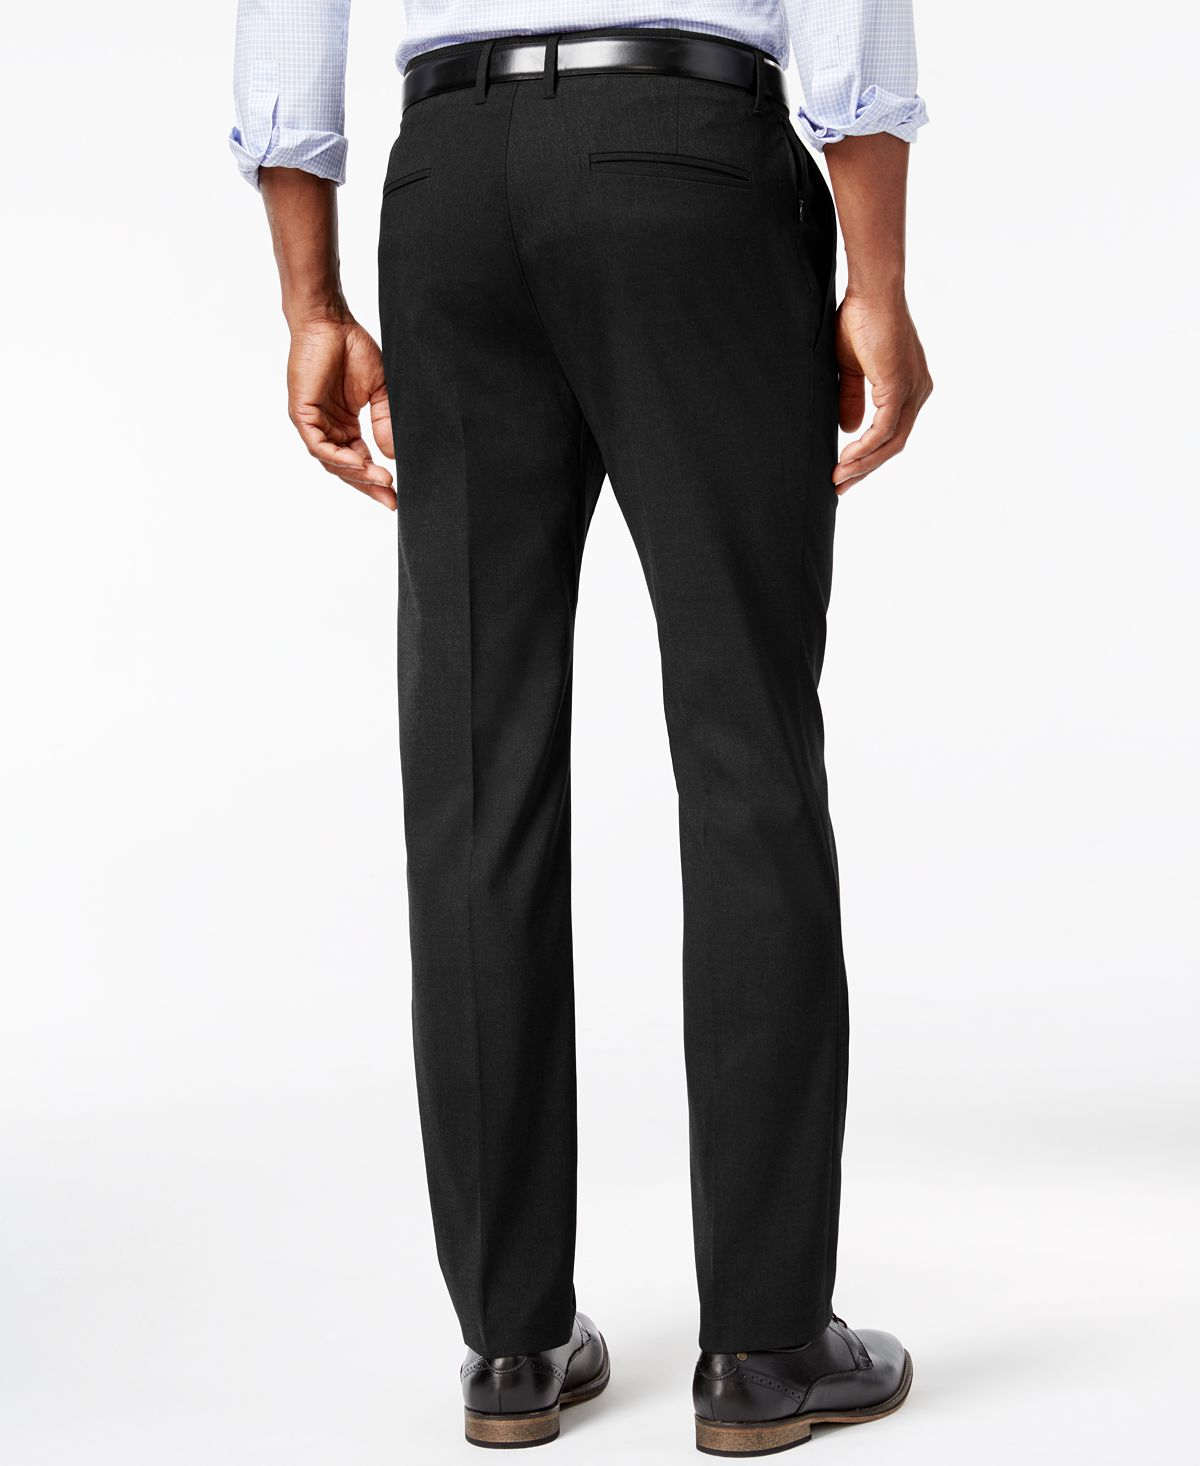 Kenneth Cole Reaction Stretch Athleisure Slim-fit Dress Pants Black